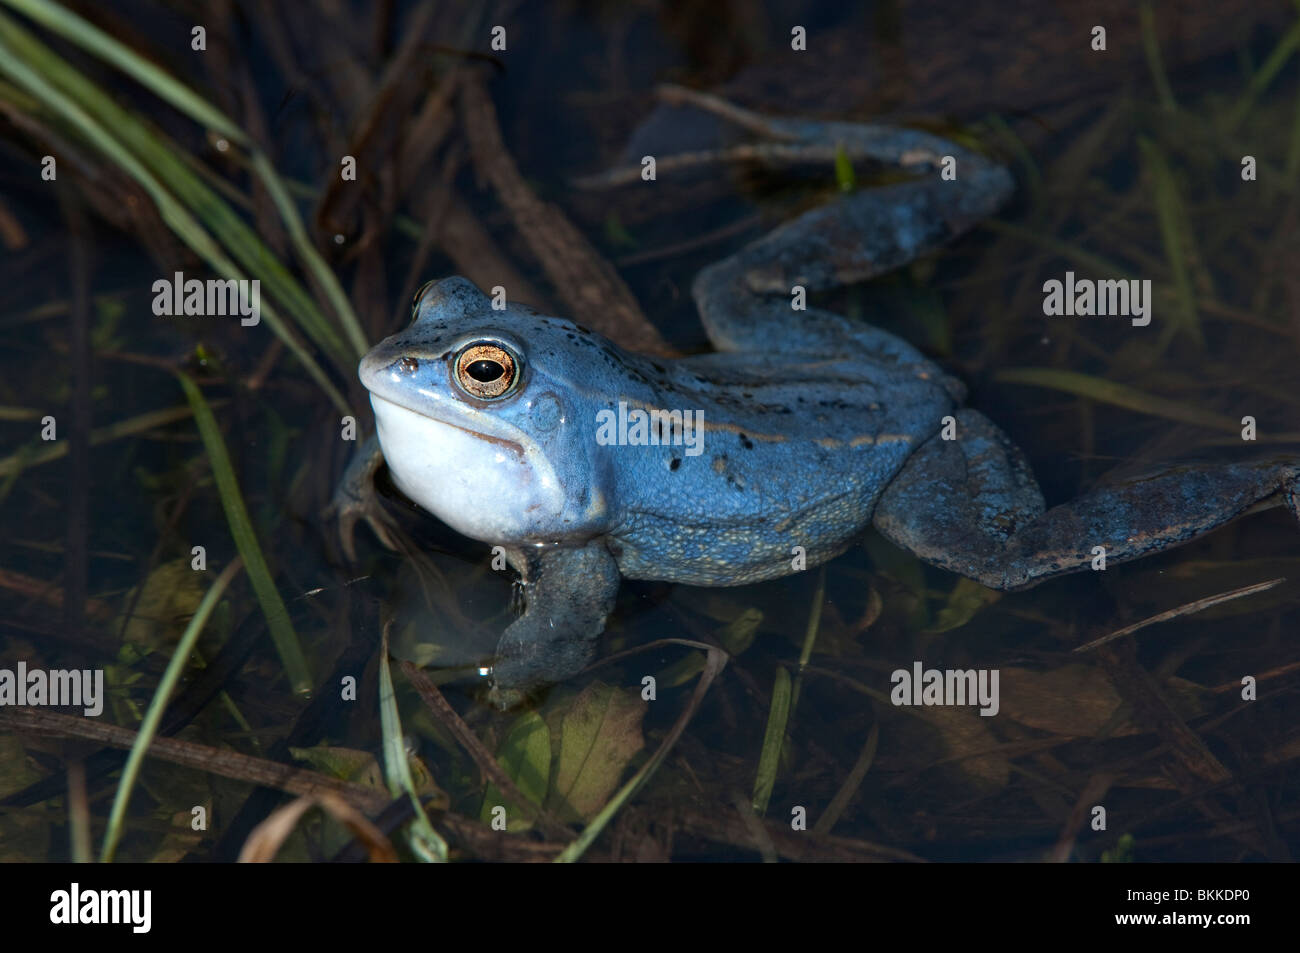 Moor Frog (Rana arvalis). Blue colored male in shallow water, croaking. - Stock Image